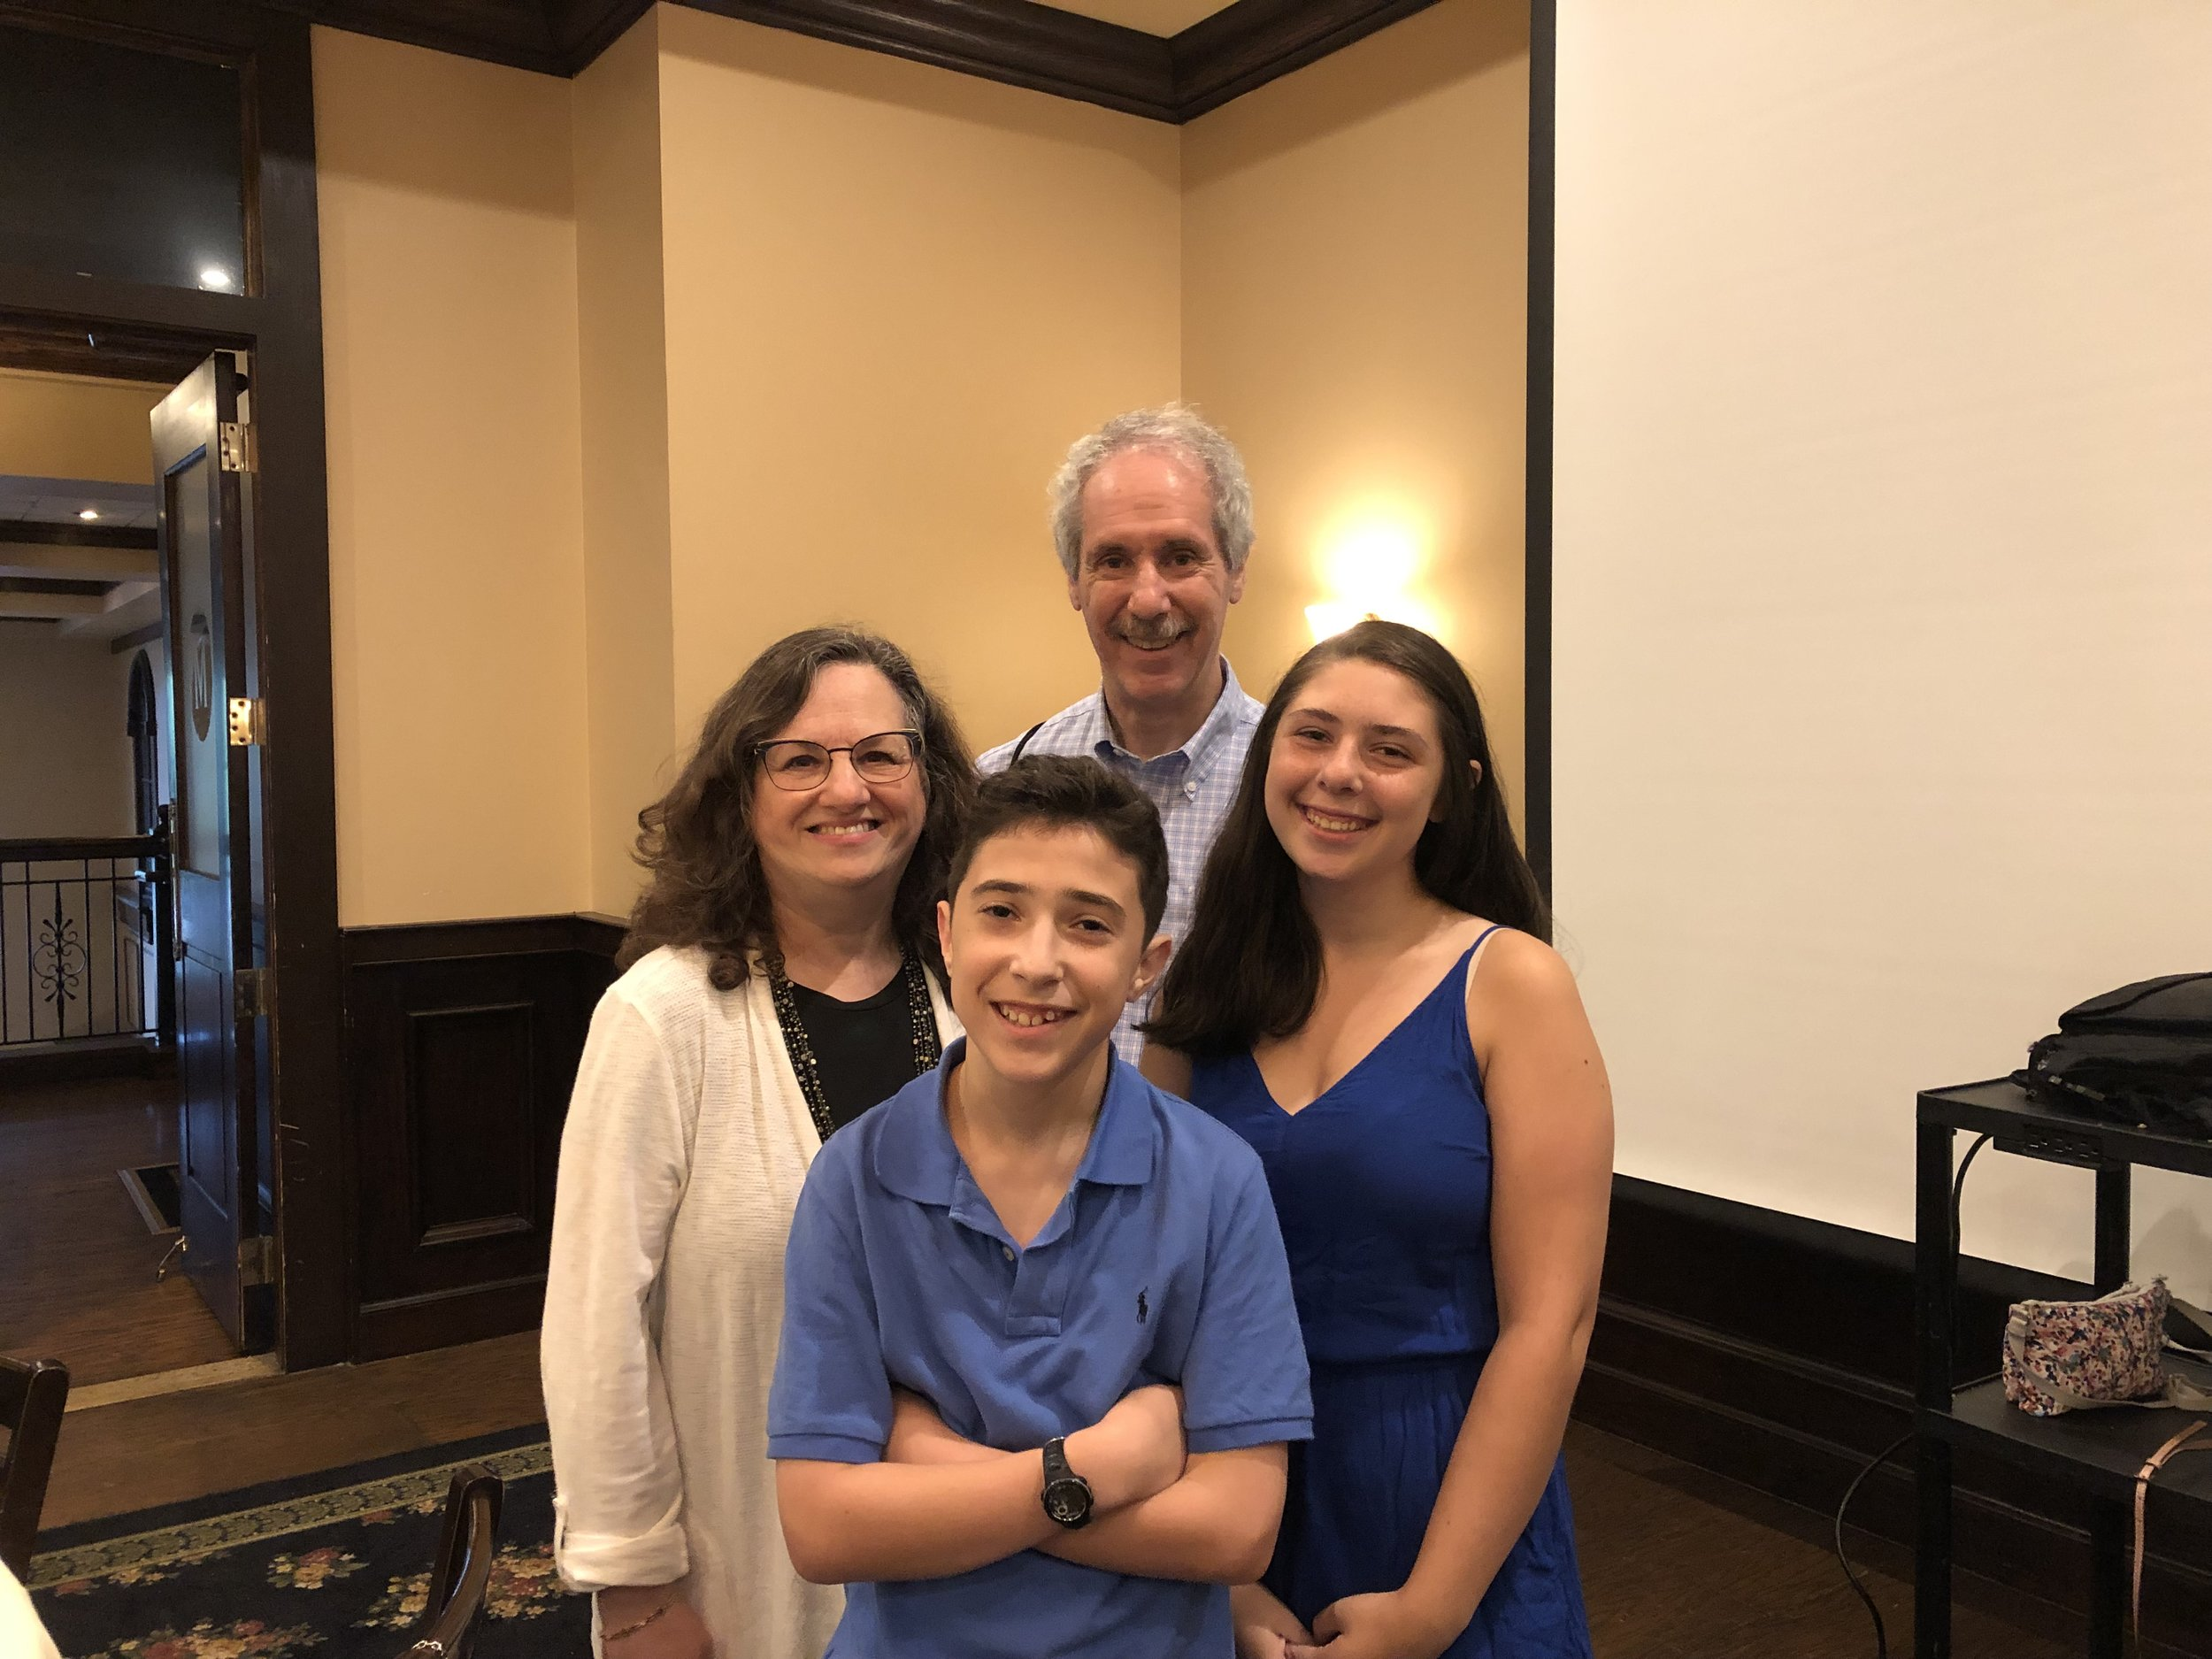 Ian Shure-Bar Mitzvah at his evening dinner (August 24, 2019) with his sister Alexa on right, with Sharon Mark Cohen and Arnee Cohen